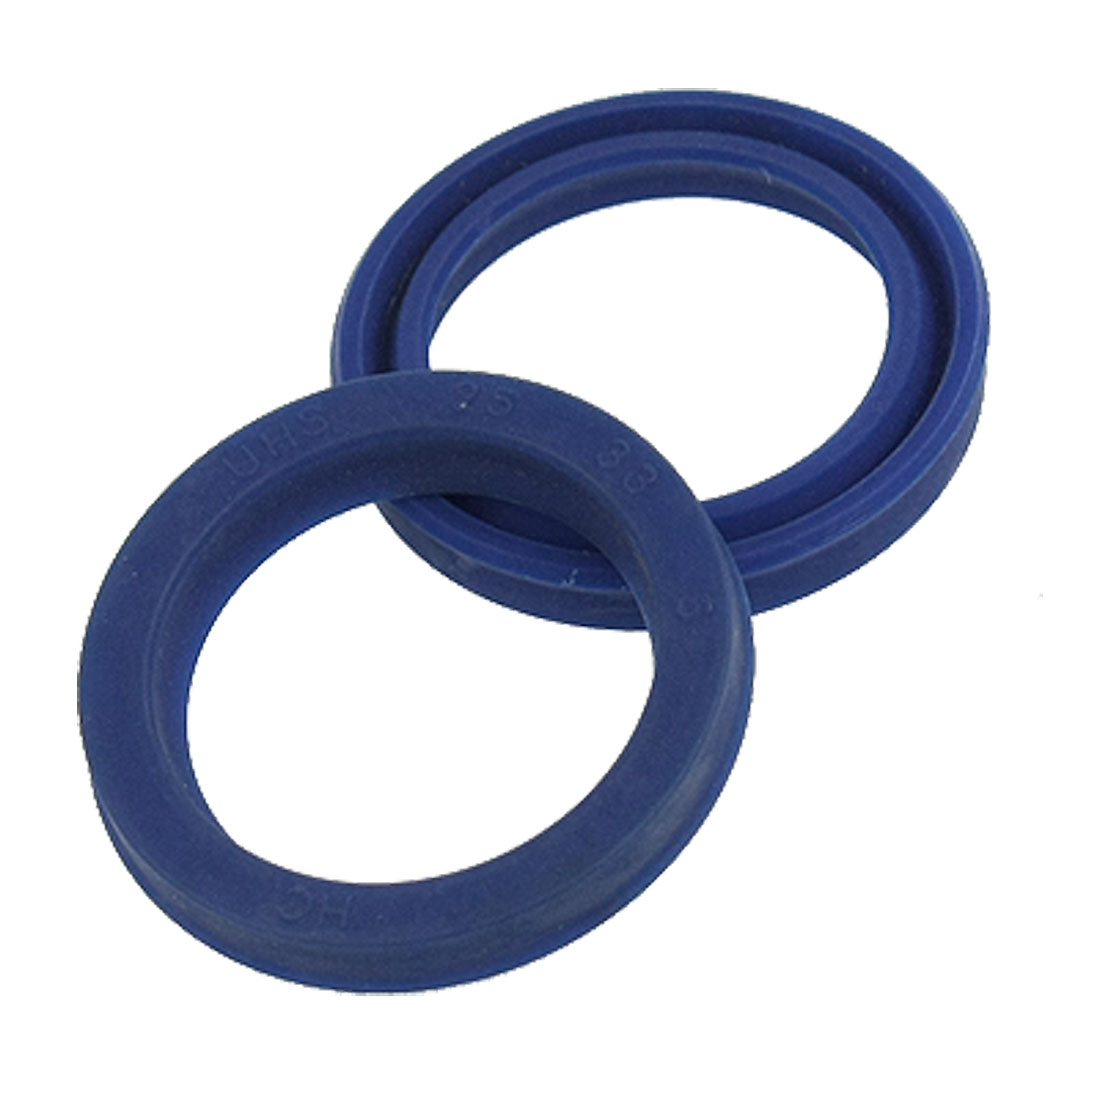 5 Pcs 25mm x 33mm Blue Polyurethane Oil Seal Rings Sealing Gaskets